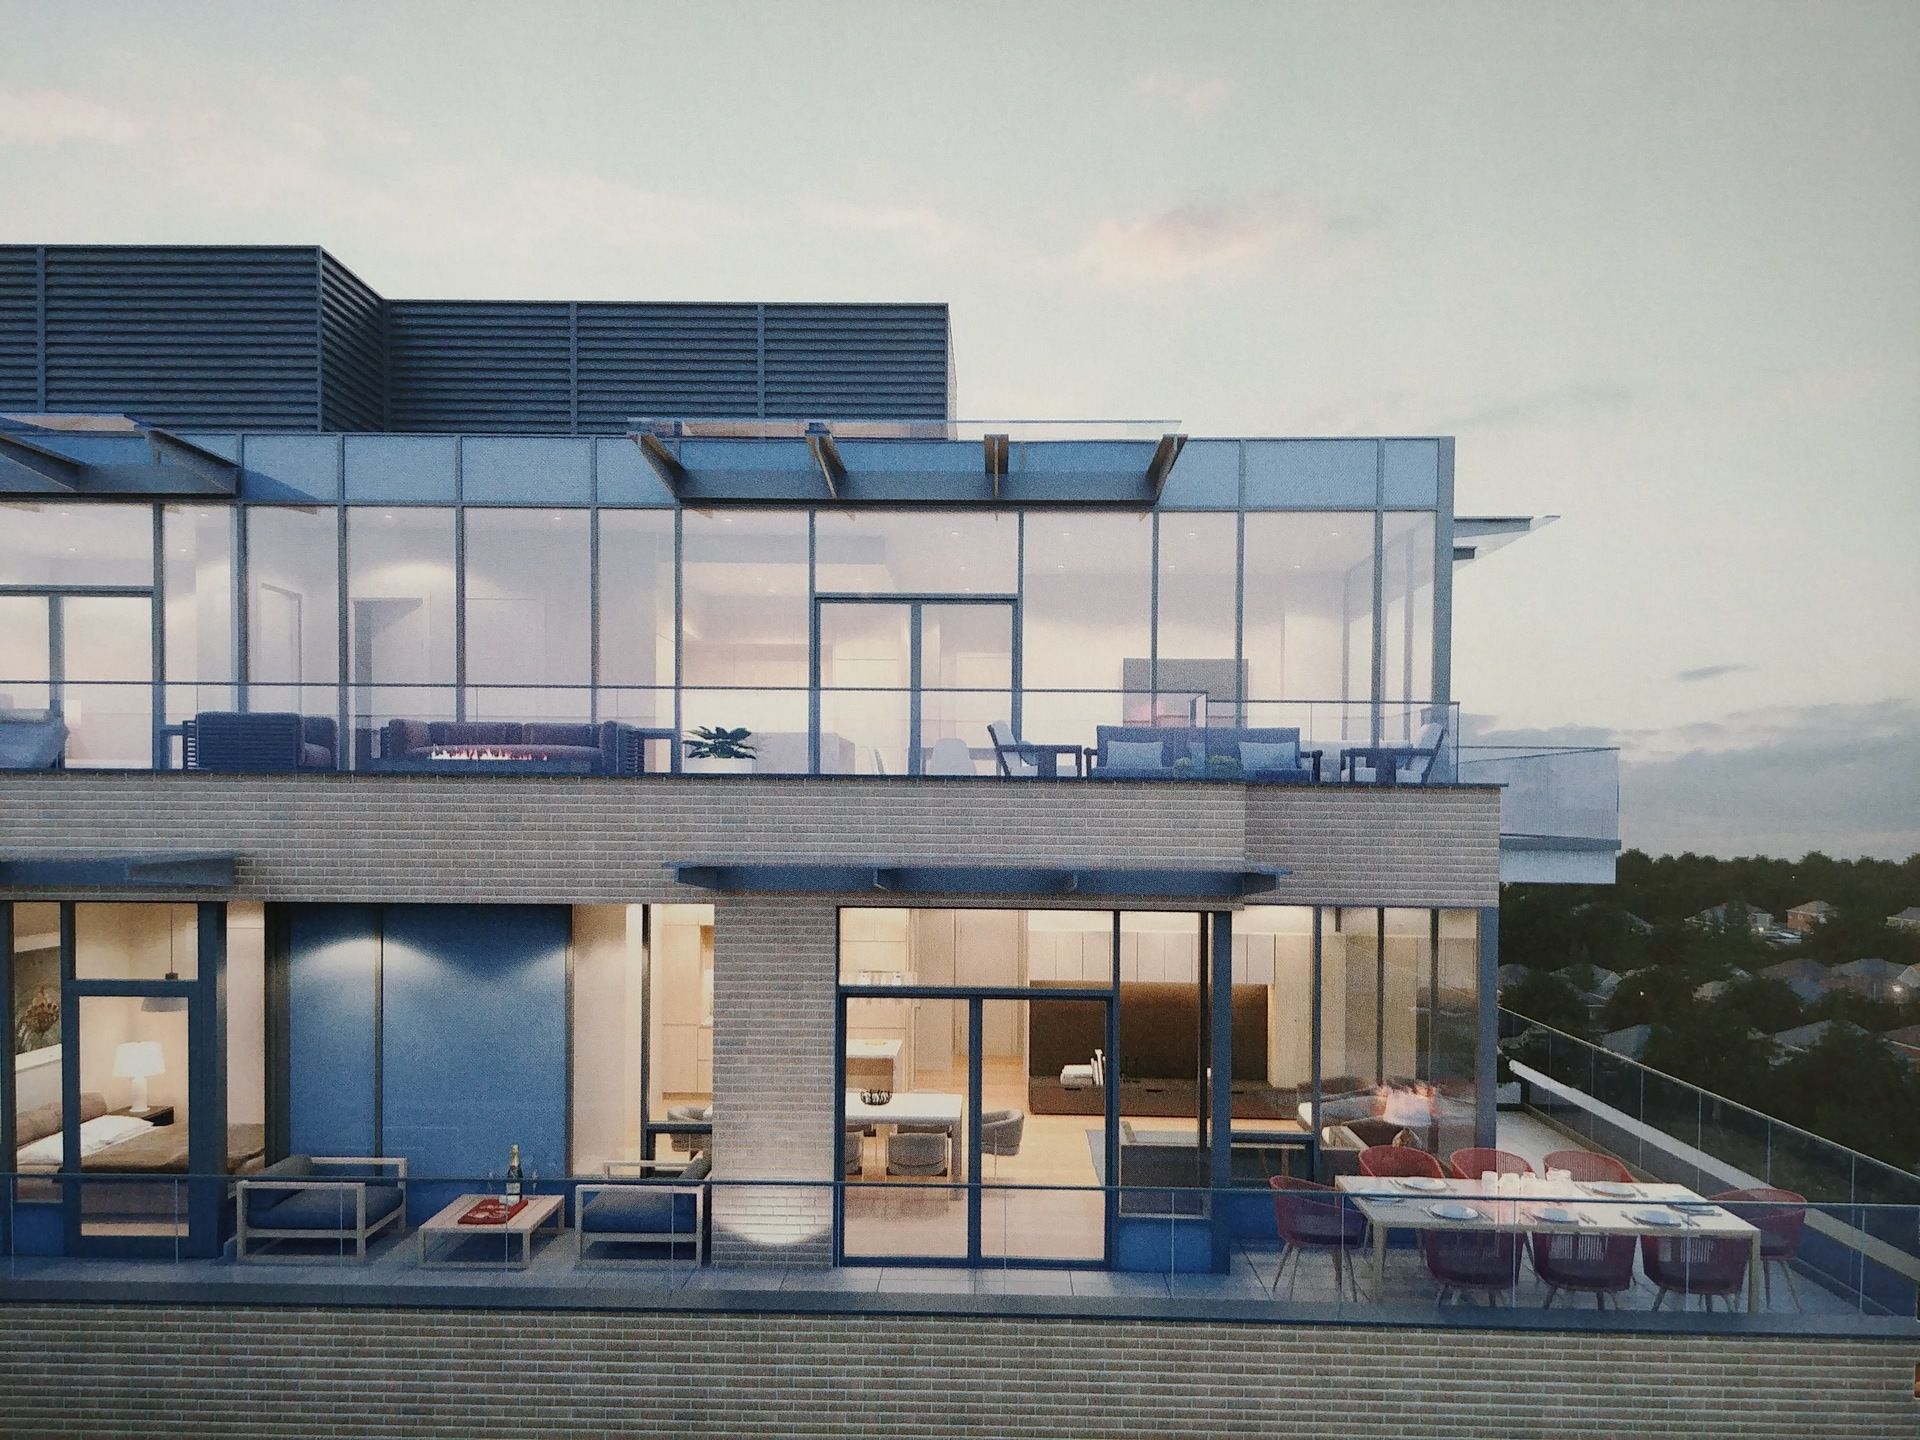 Winston rendering at Winston (989 W 67th Avenue, Marpole, Vancouver West)